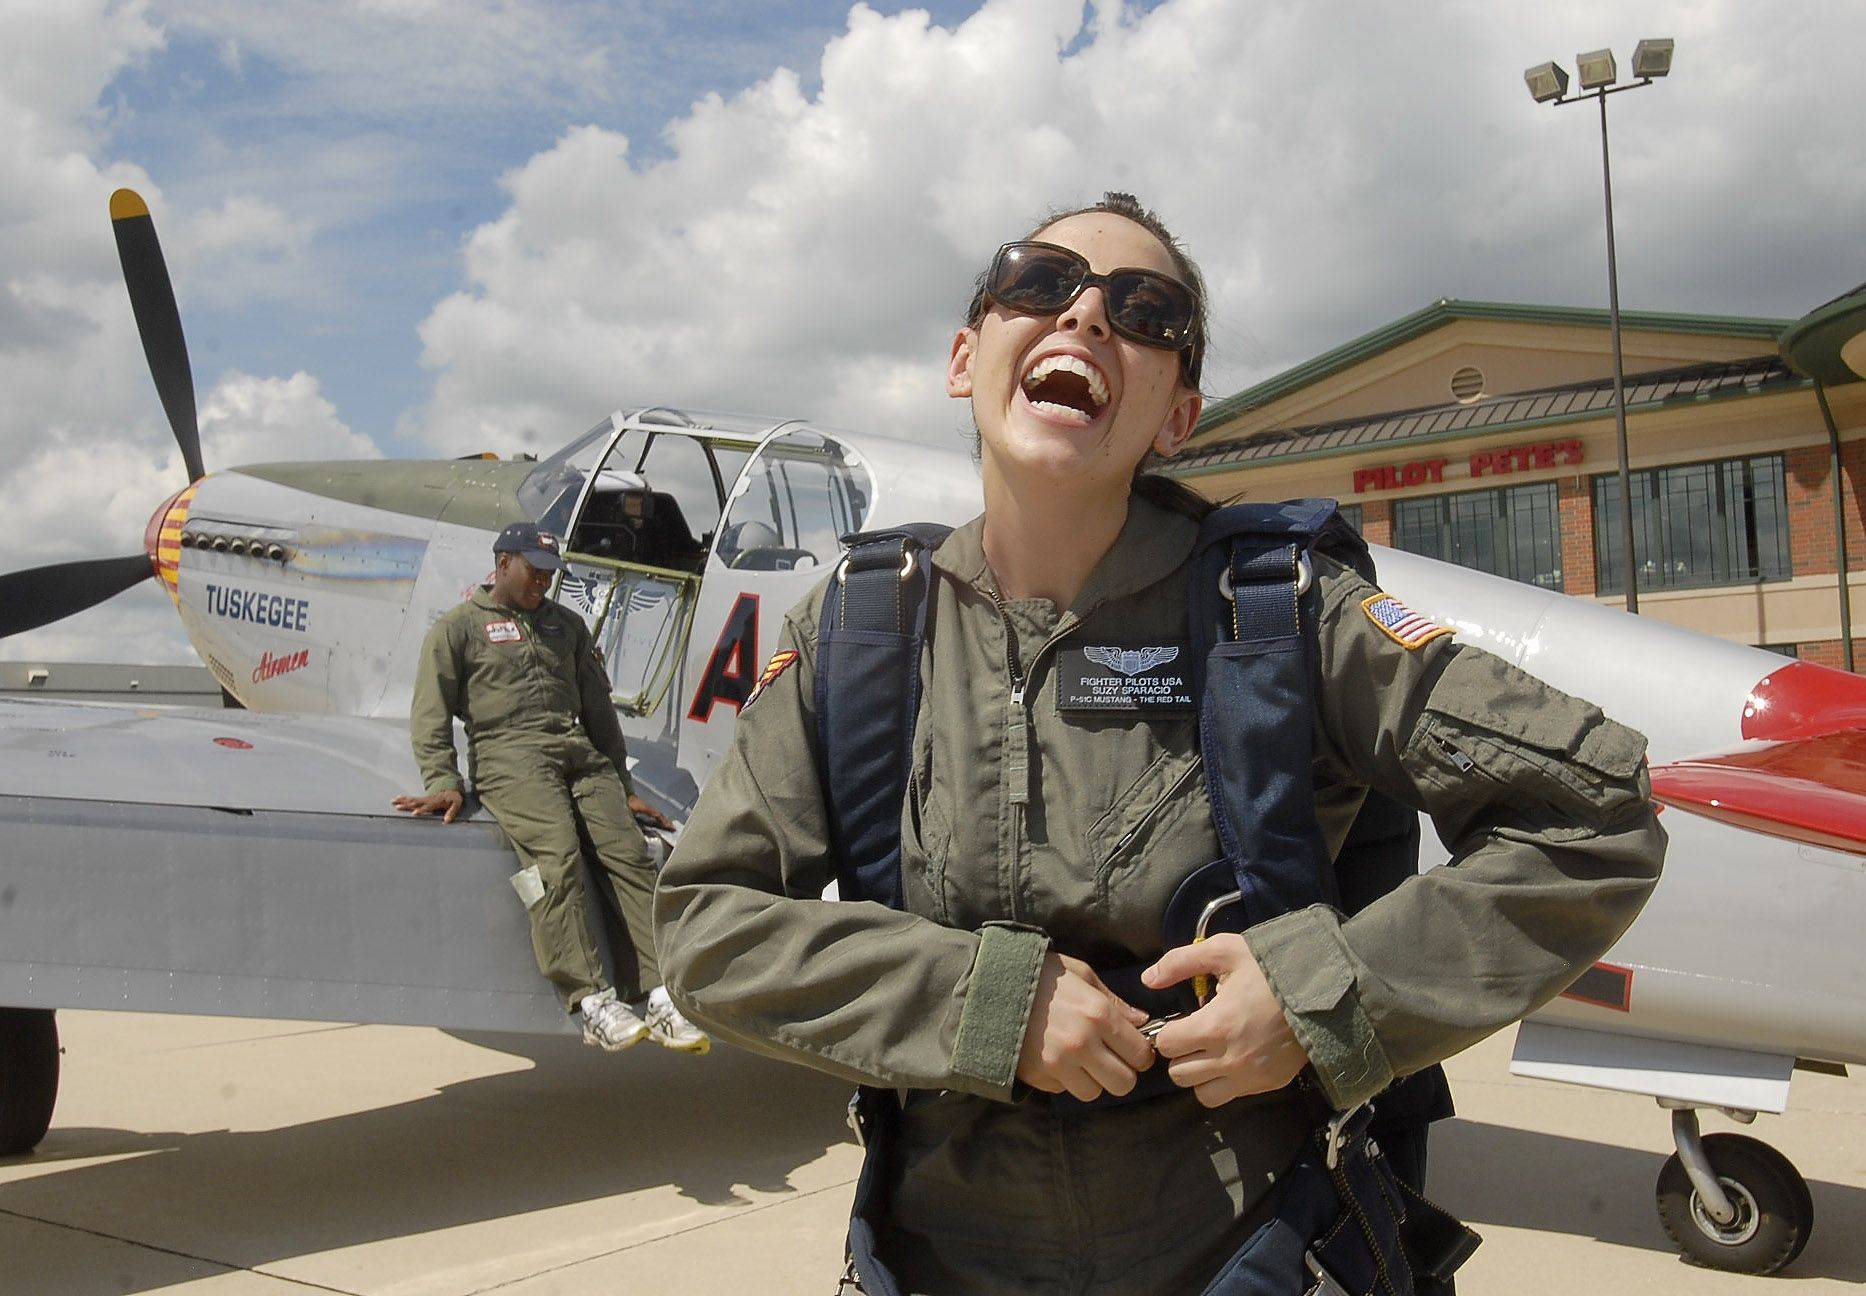 Suzy Sparacio of Naperville grins from ear to ear after her half-hour flight at Schaumburg Airport in a P51-C Mustang flown by Brad Lang, background, son of a Tuskegee Airman. Her flight was a 26th birthday present given to her by family friend David Mullins of Darien.